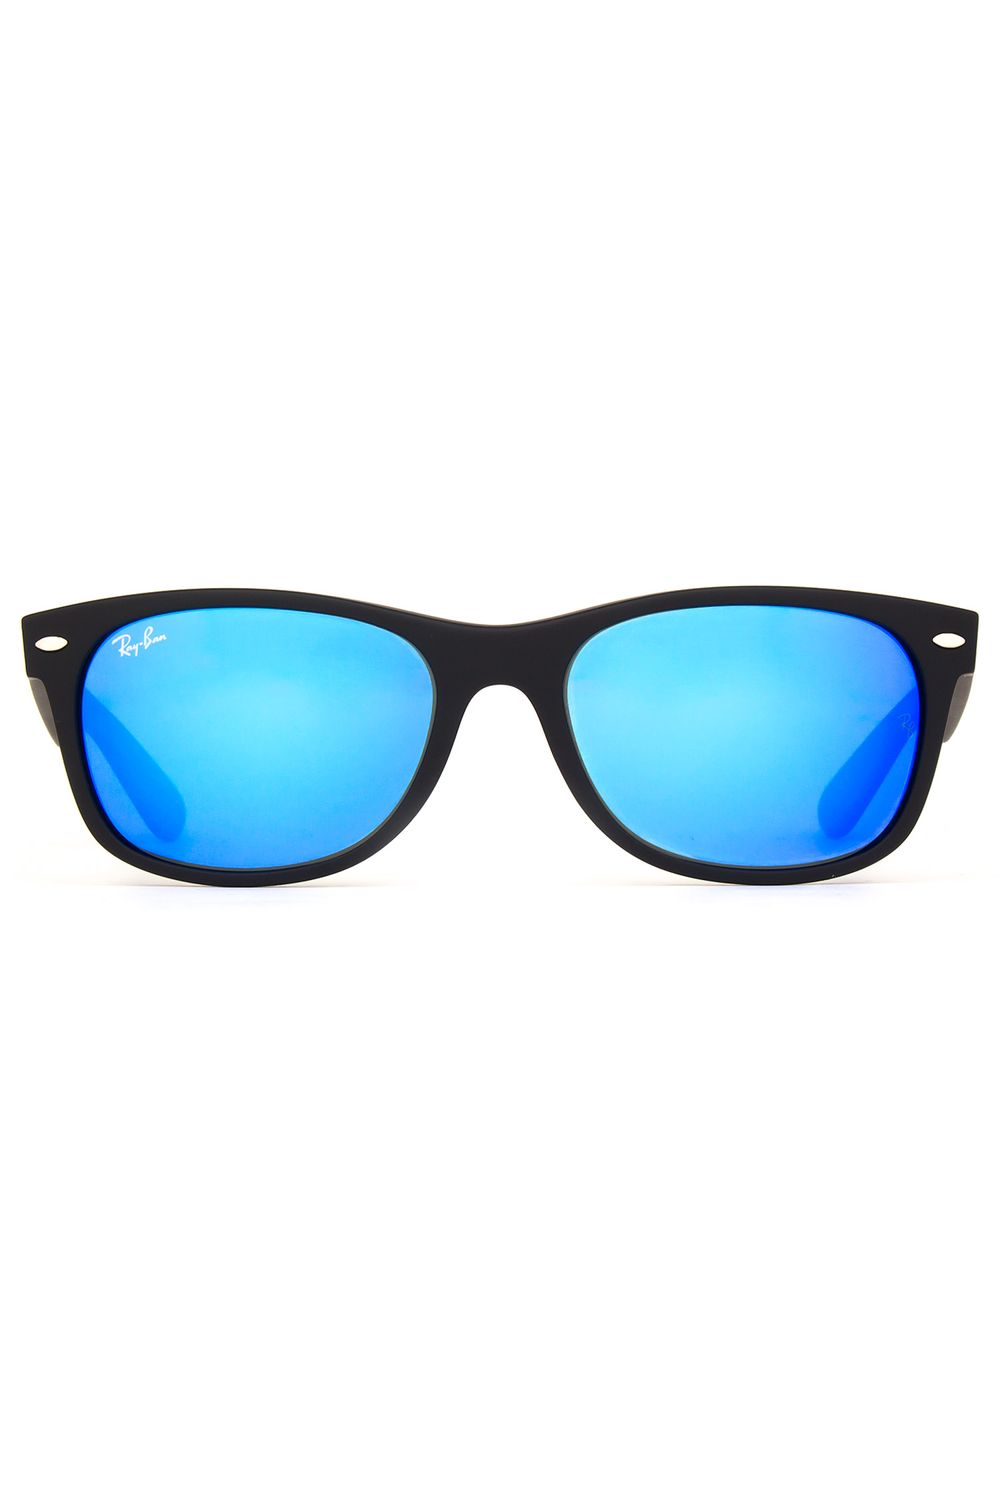 71d97eaf074e8 Óculos de Sol Ray Ban New Wayfarer Flash RB2132LL 622 17-55 - Moda it